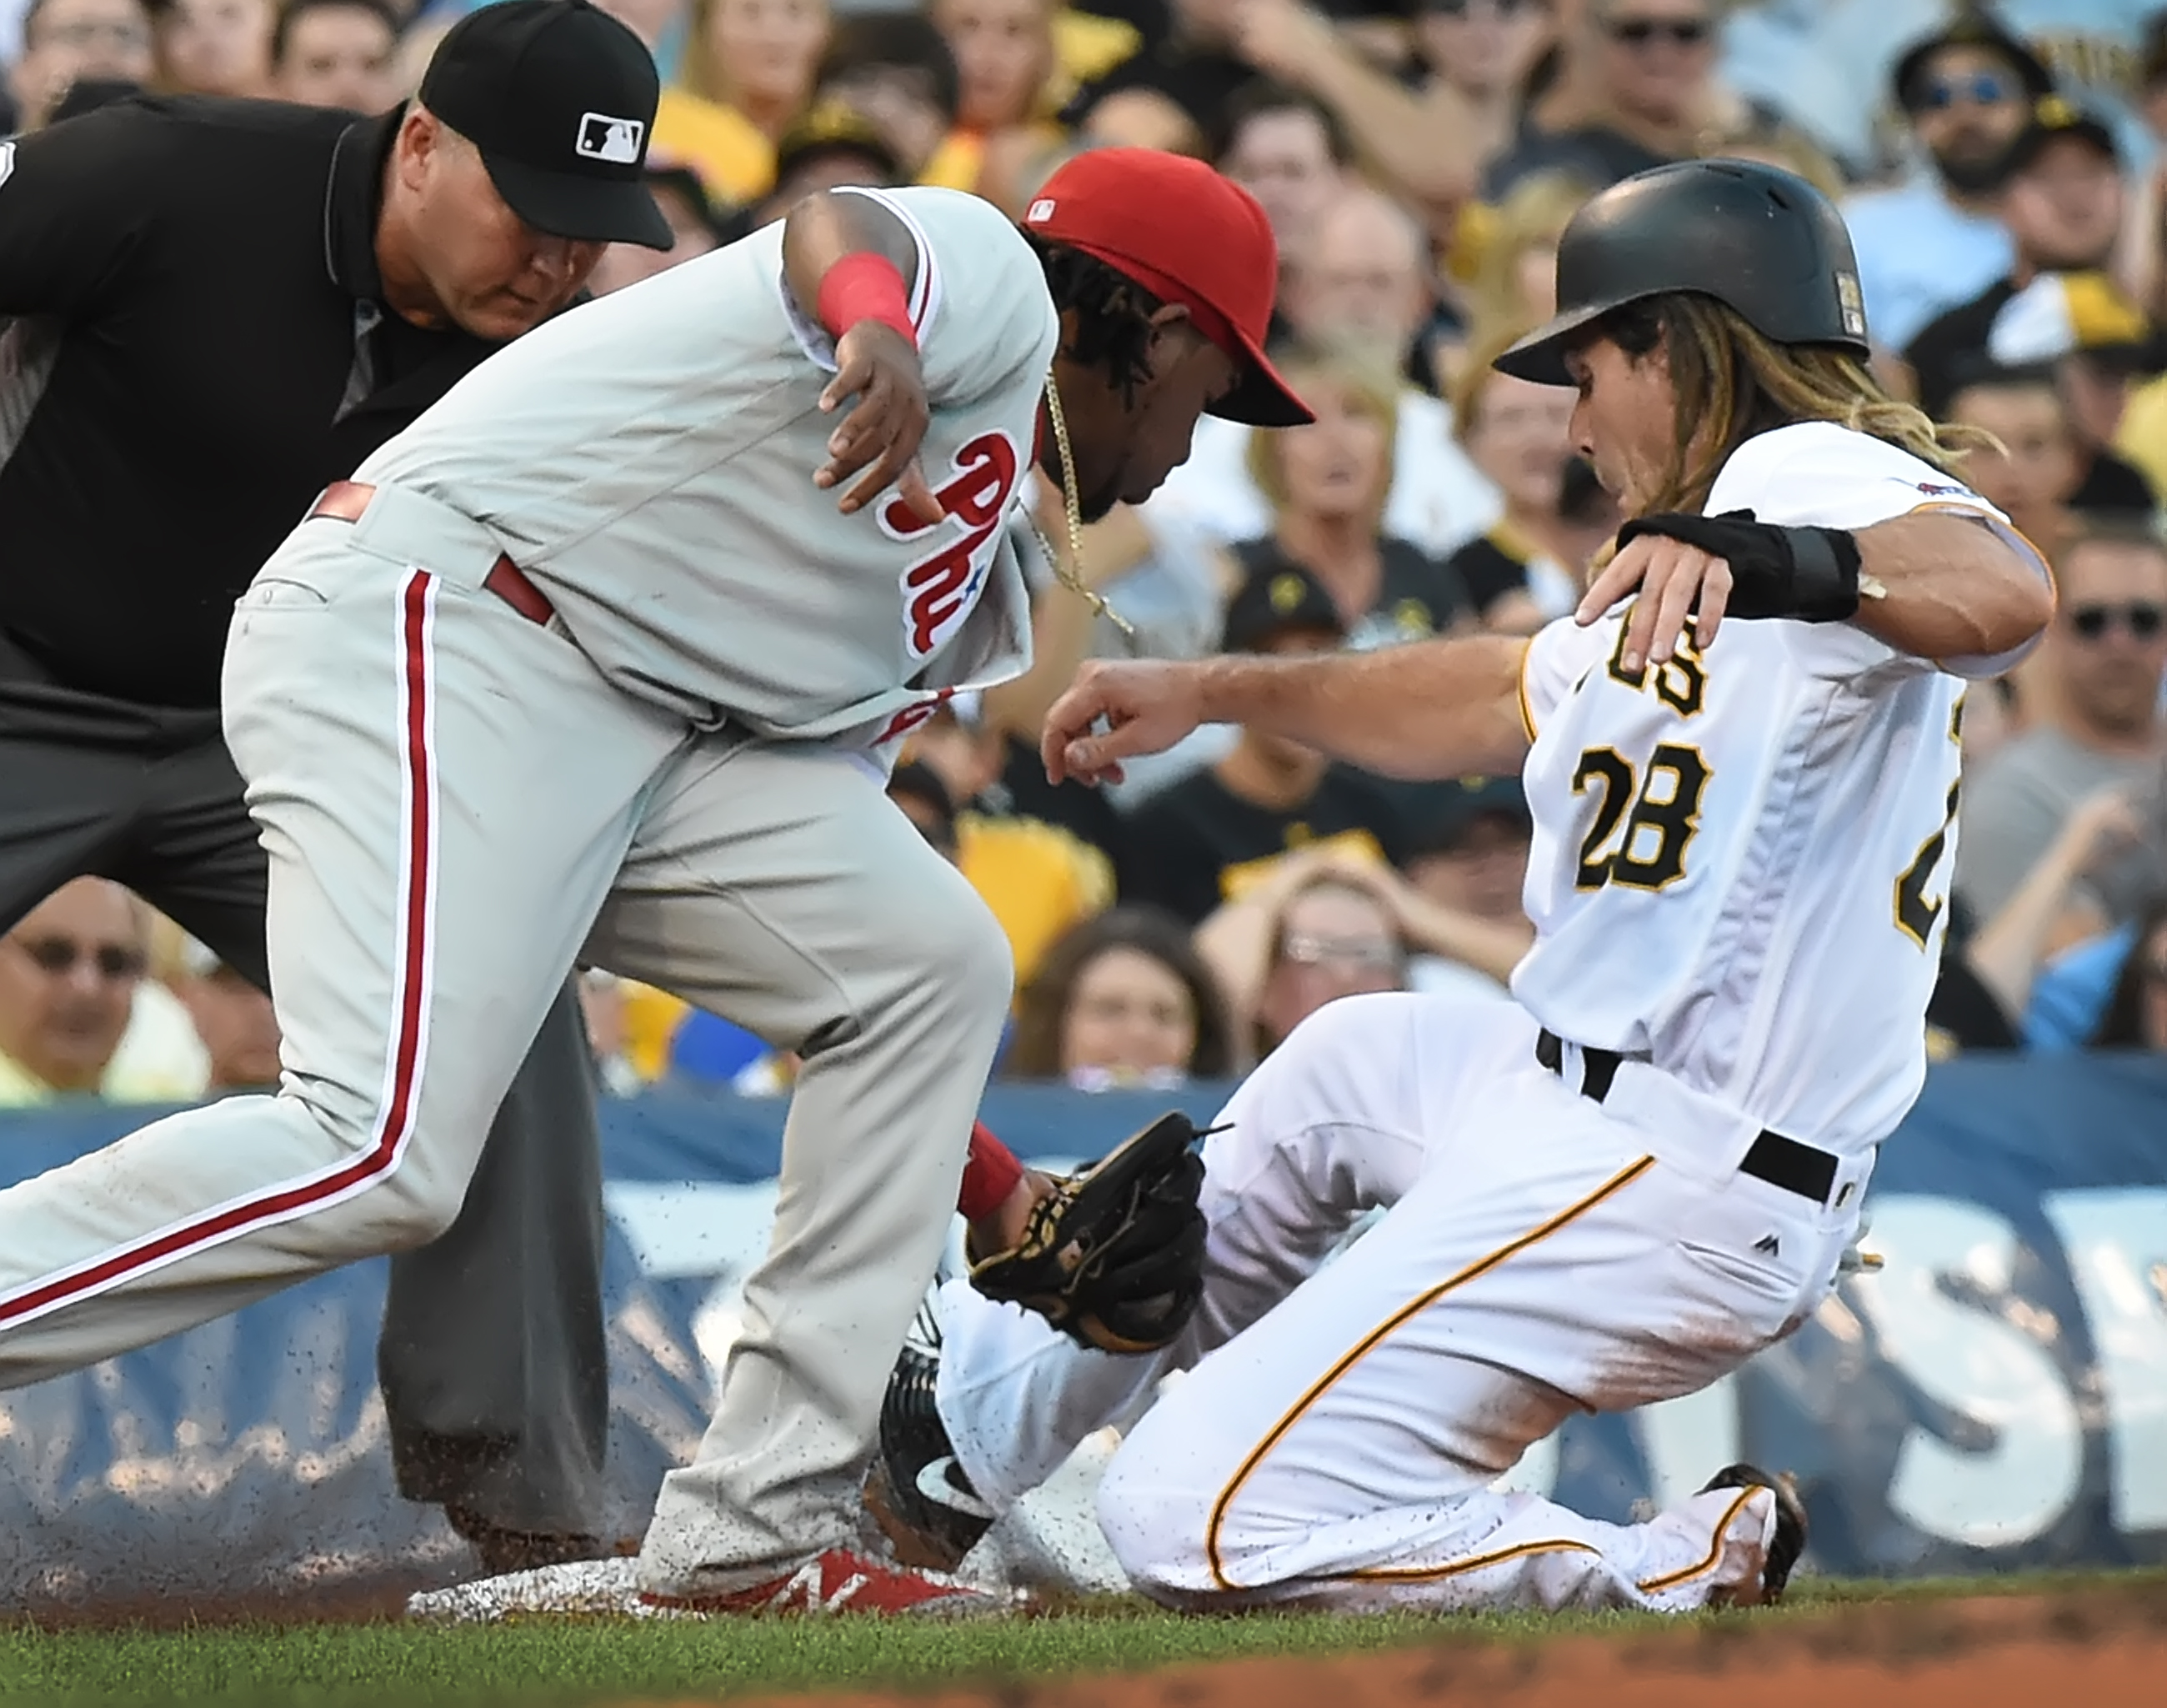 John Jaso back in leadoff spot as Pirates rookie Tyler Glasnow makes home debut